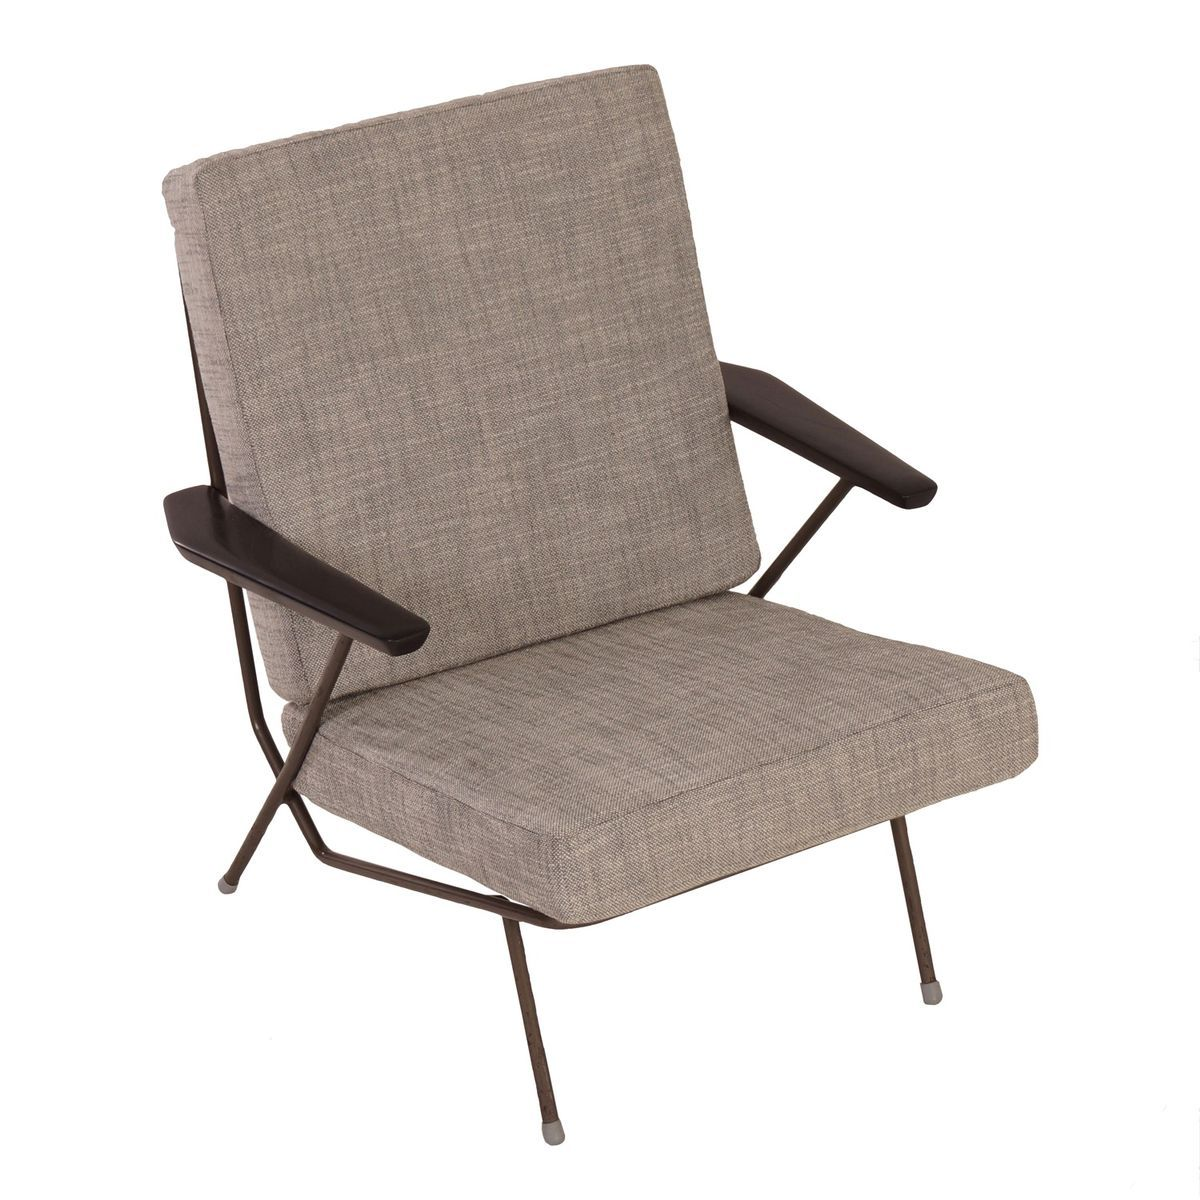 Sessel Design Günstig Sessel Billig Kaufen | Sessel Bequem Design | Stressless ...